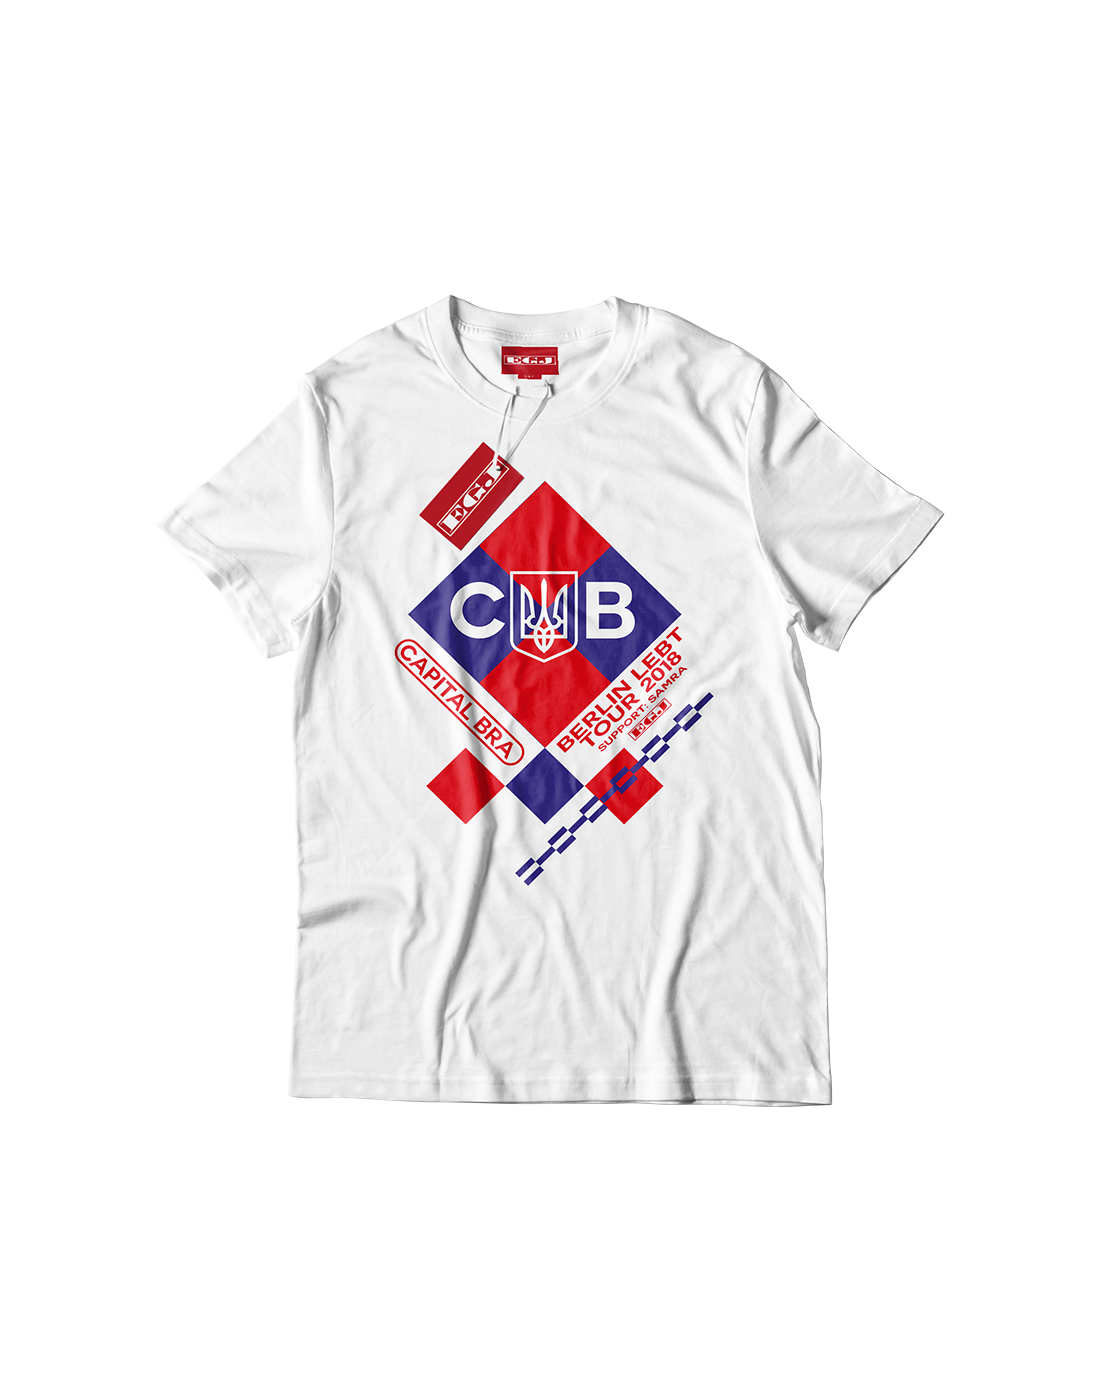 Capital Berlin Lebt Tour Shirt White